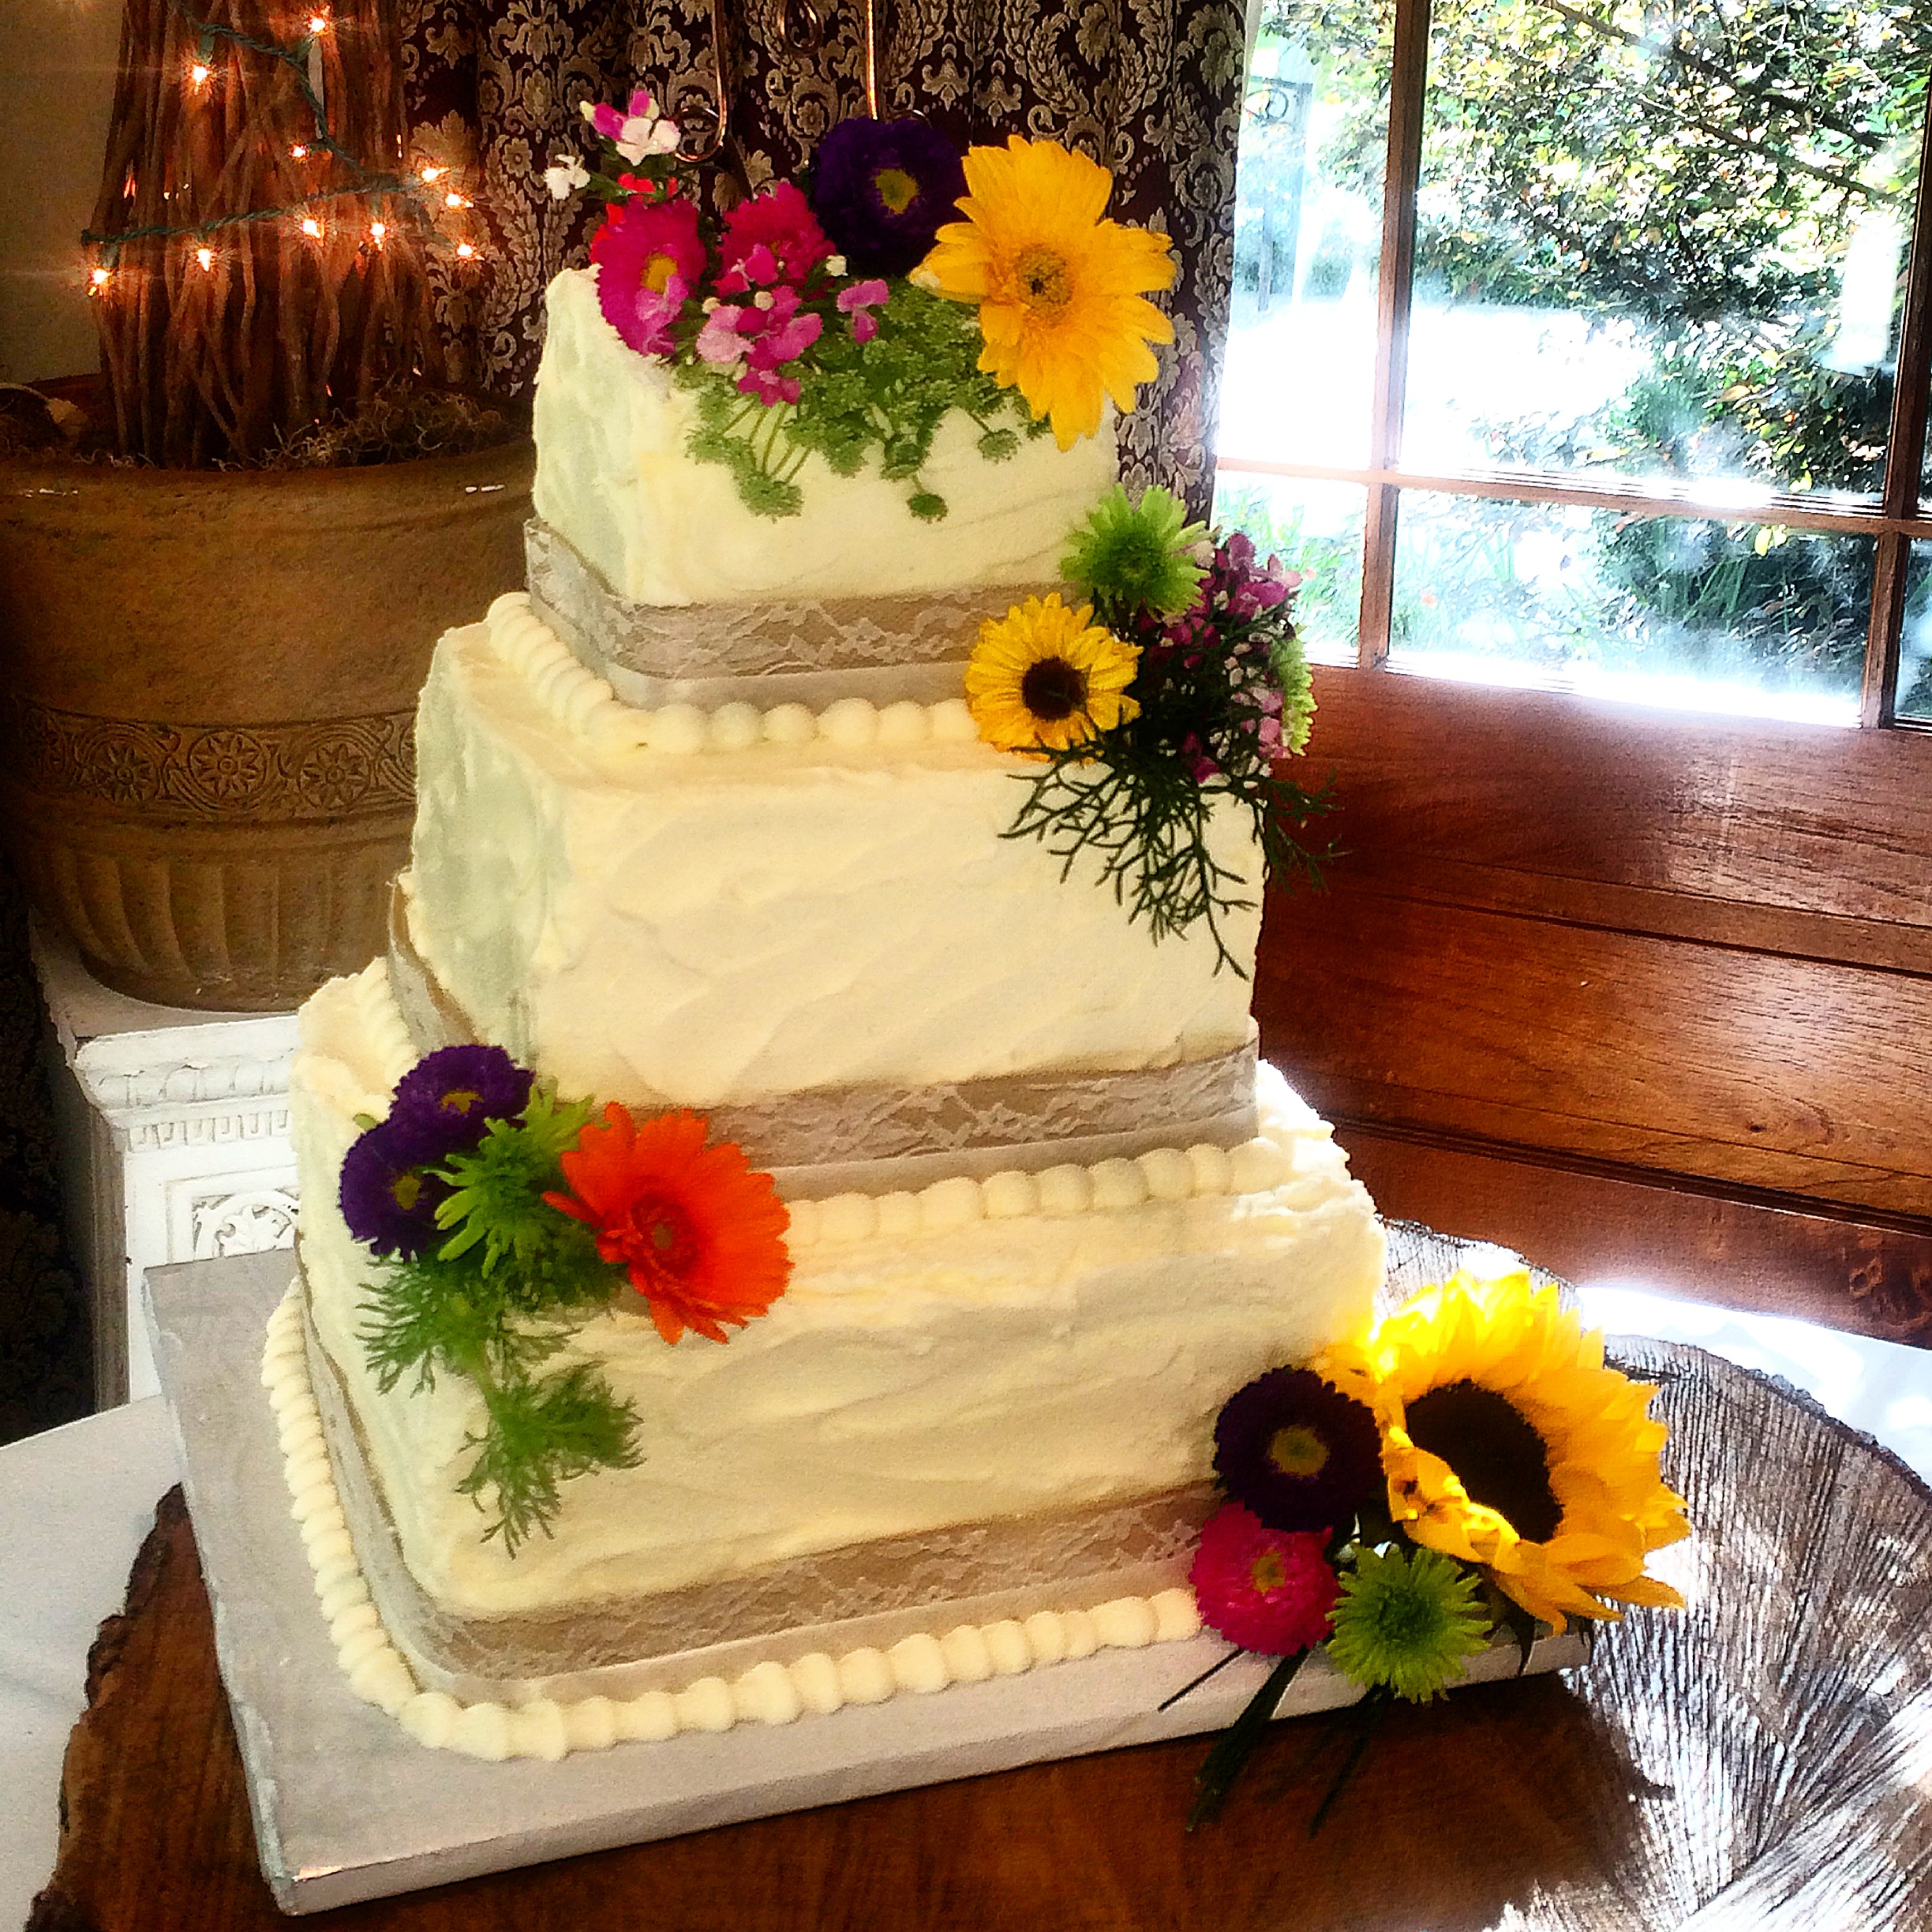 Square Wedding Cake Fresh Flowers - Flowers Healthy